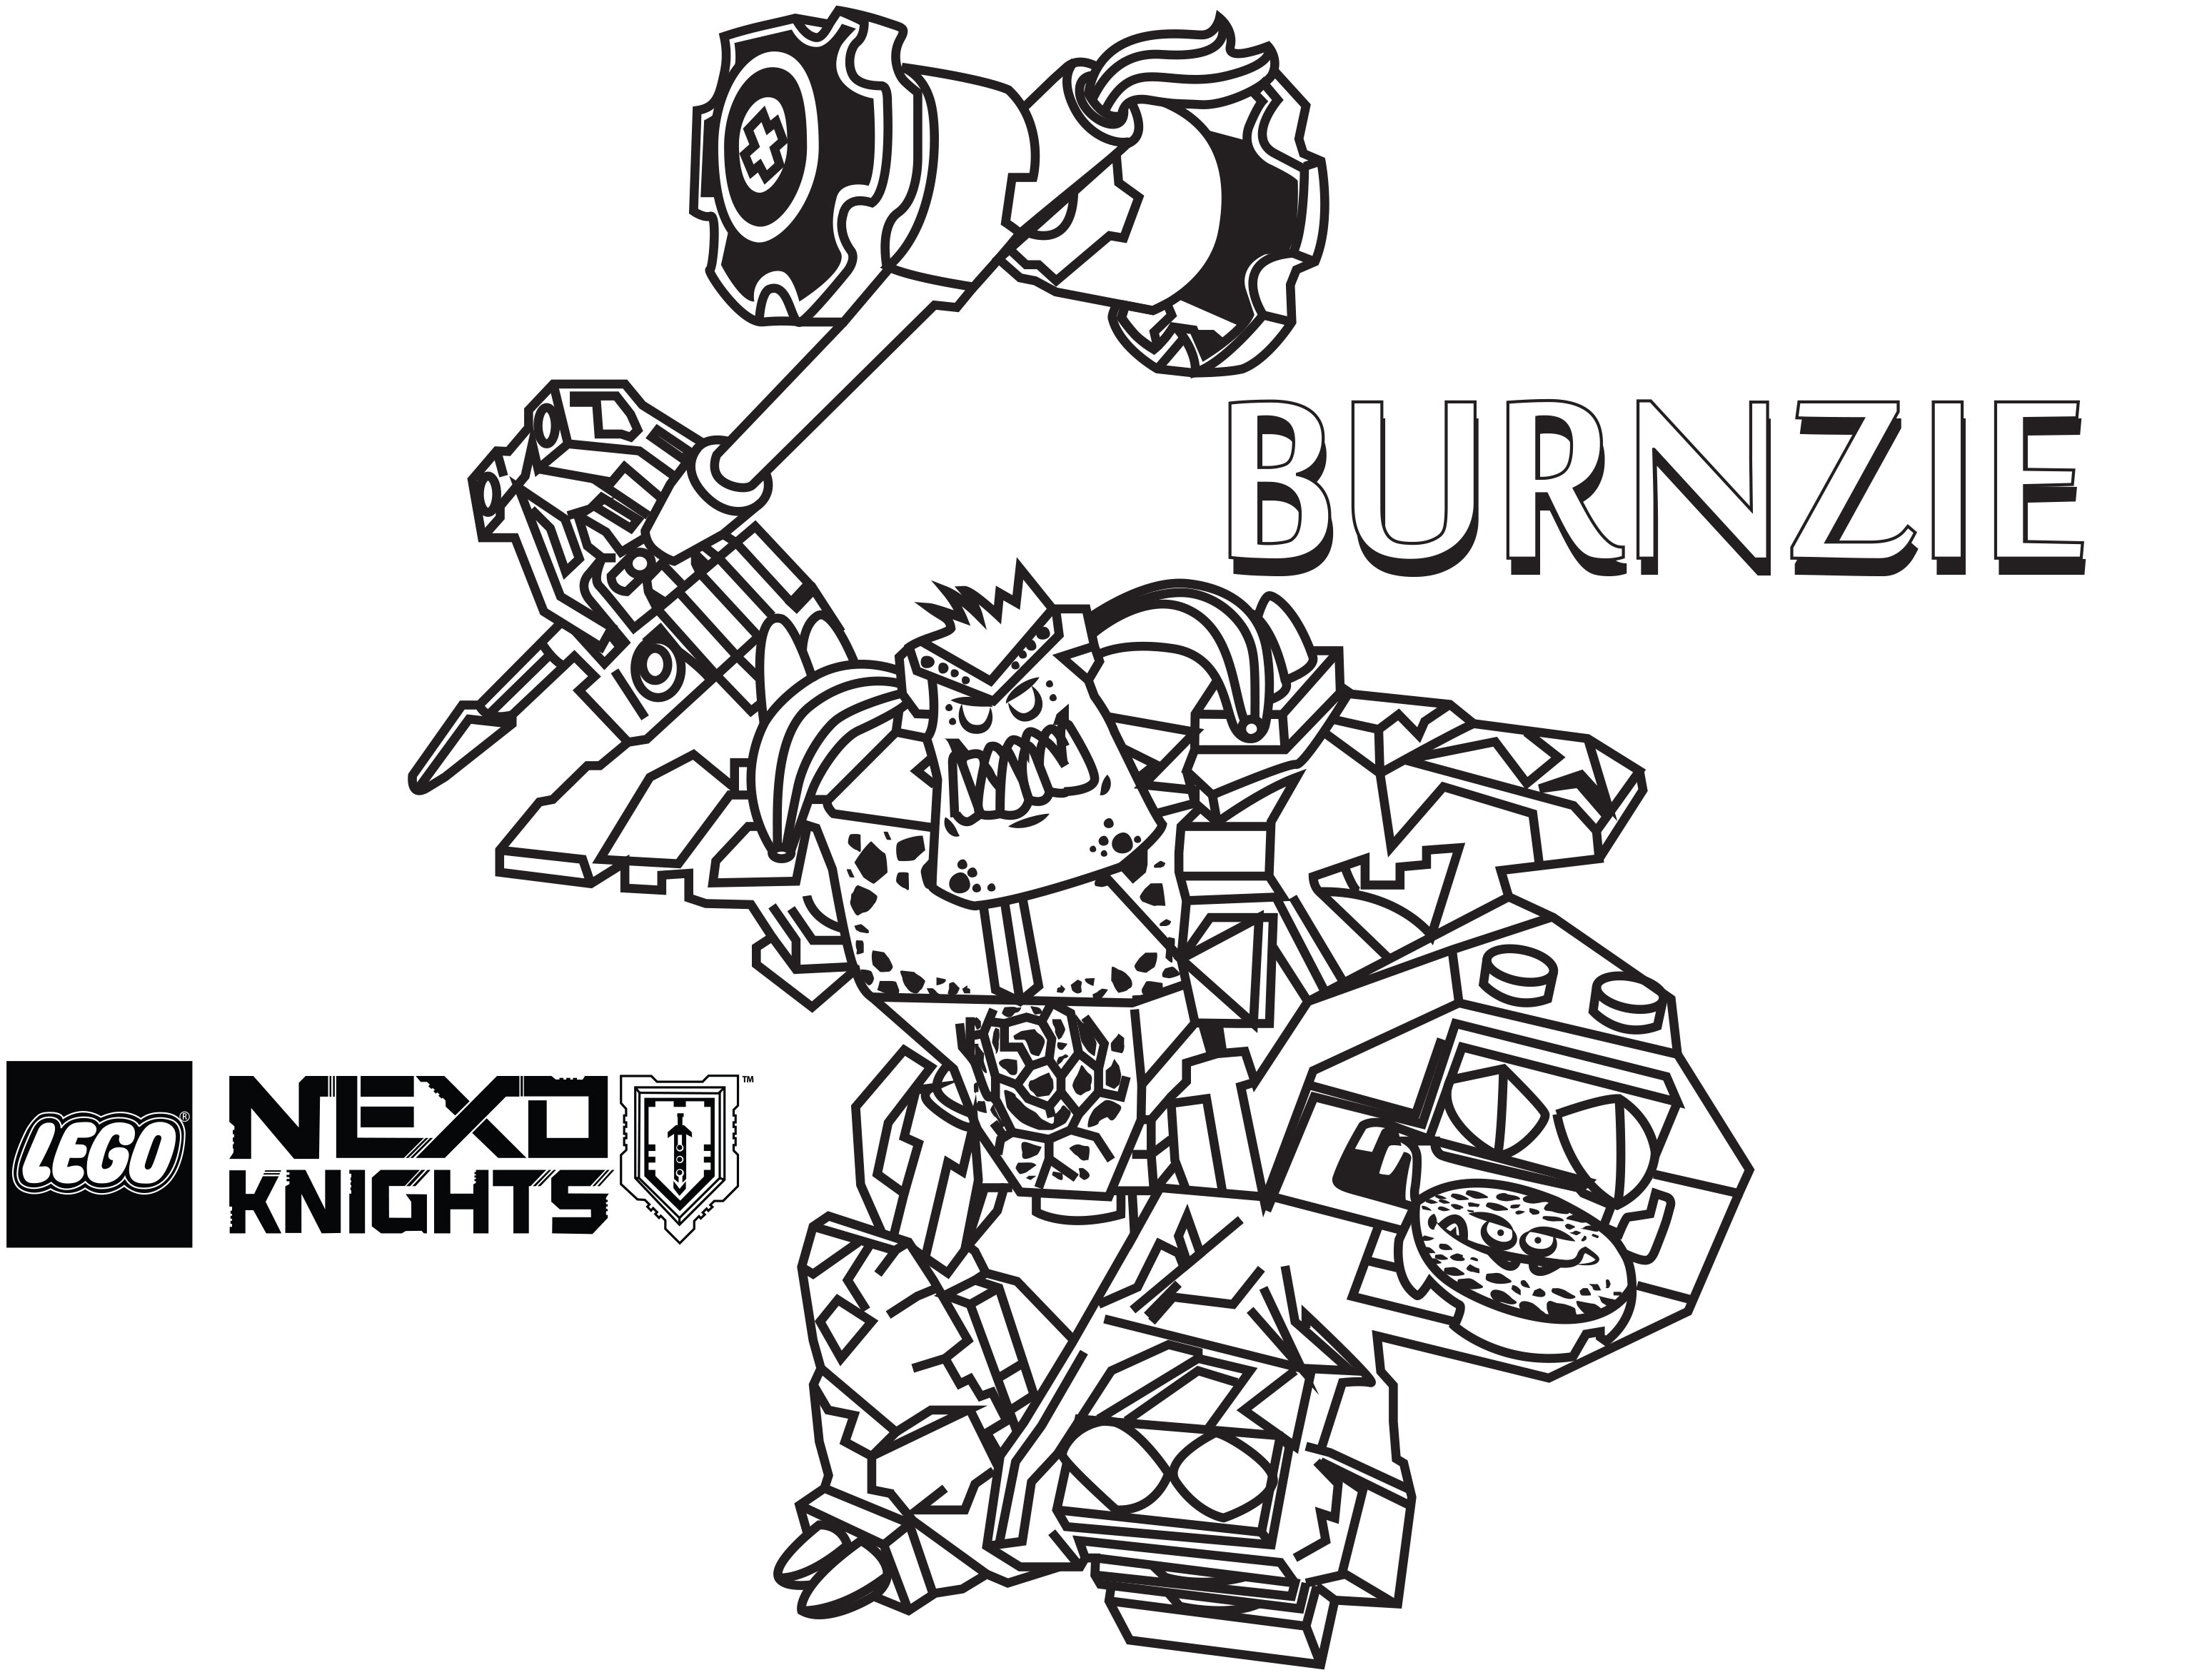 3098x2346 Lego Nexo Knights Coloring Pages Burnzie